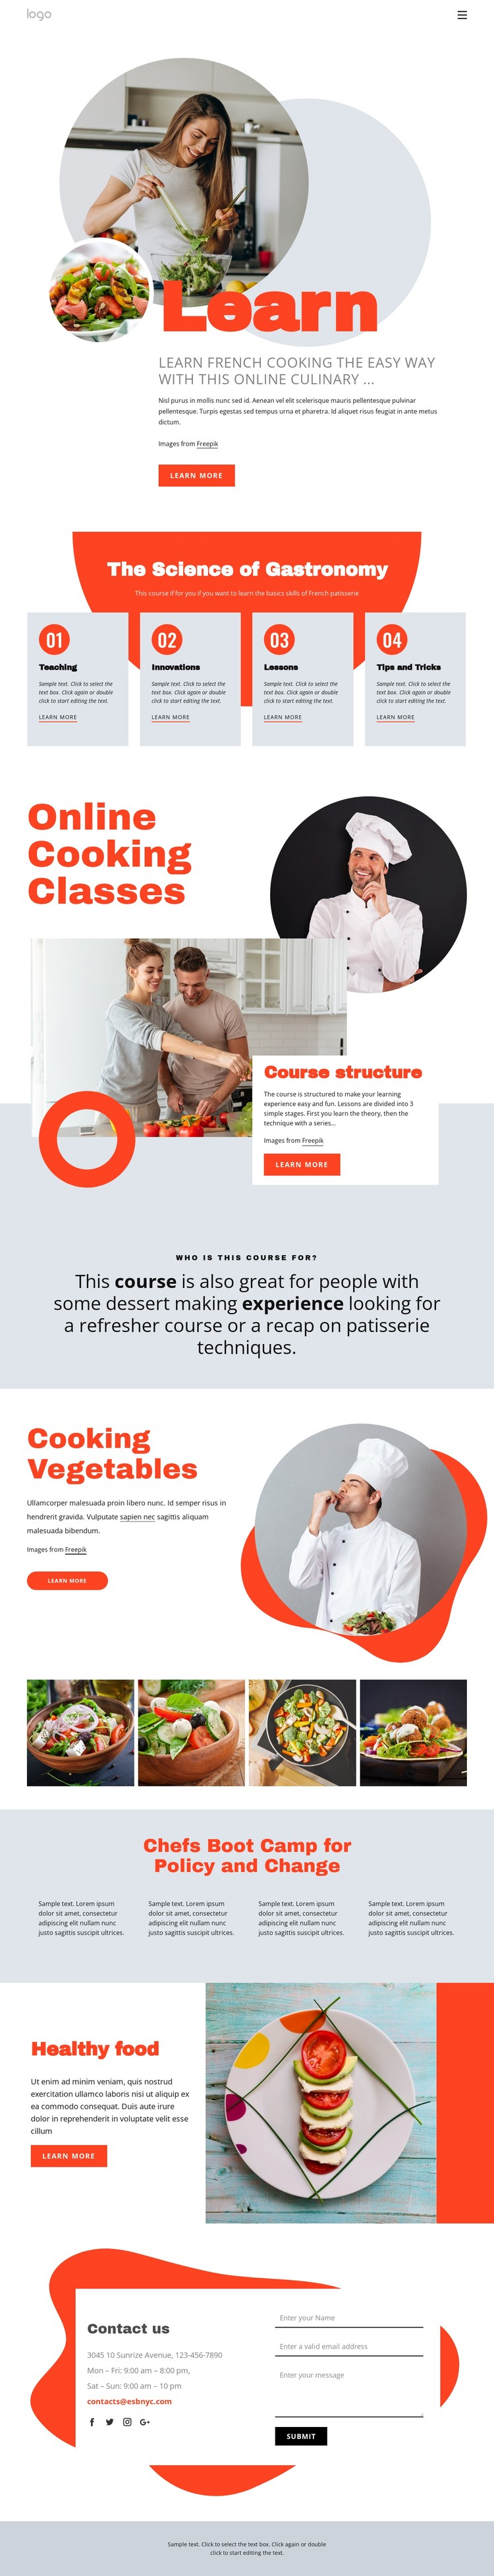 Learn cooking the easy way CSS Template